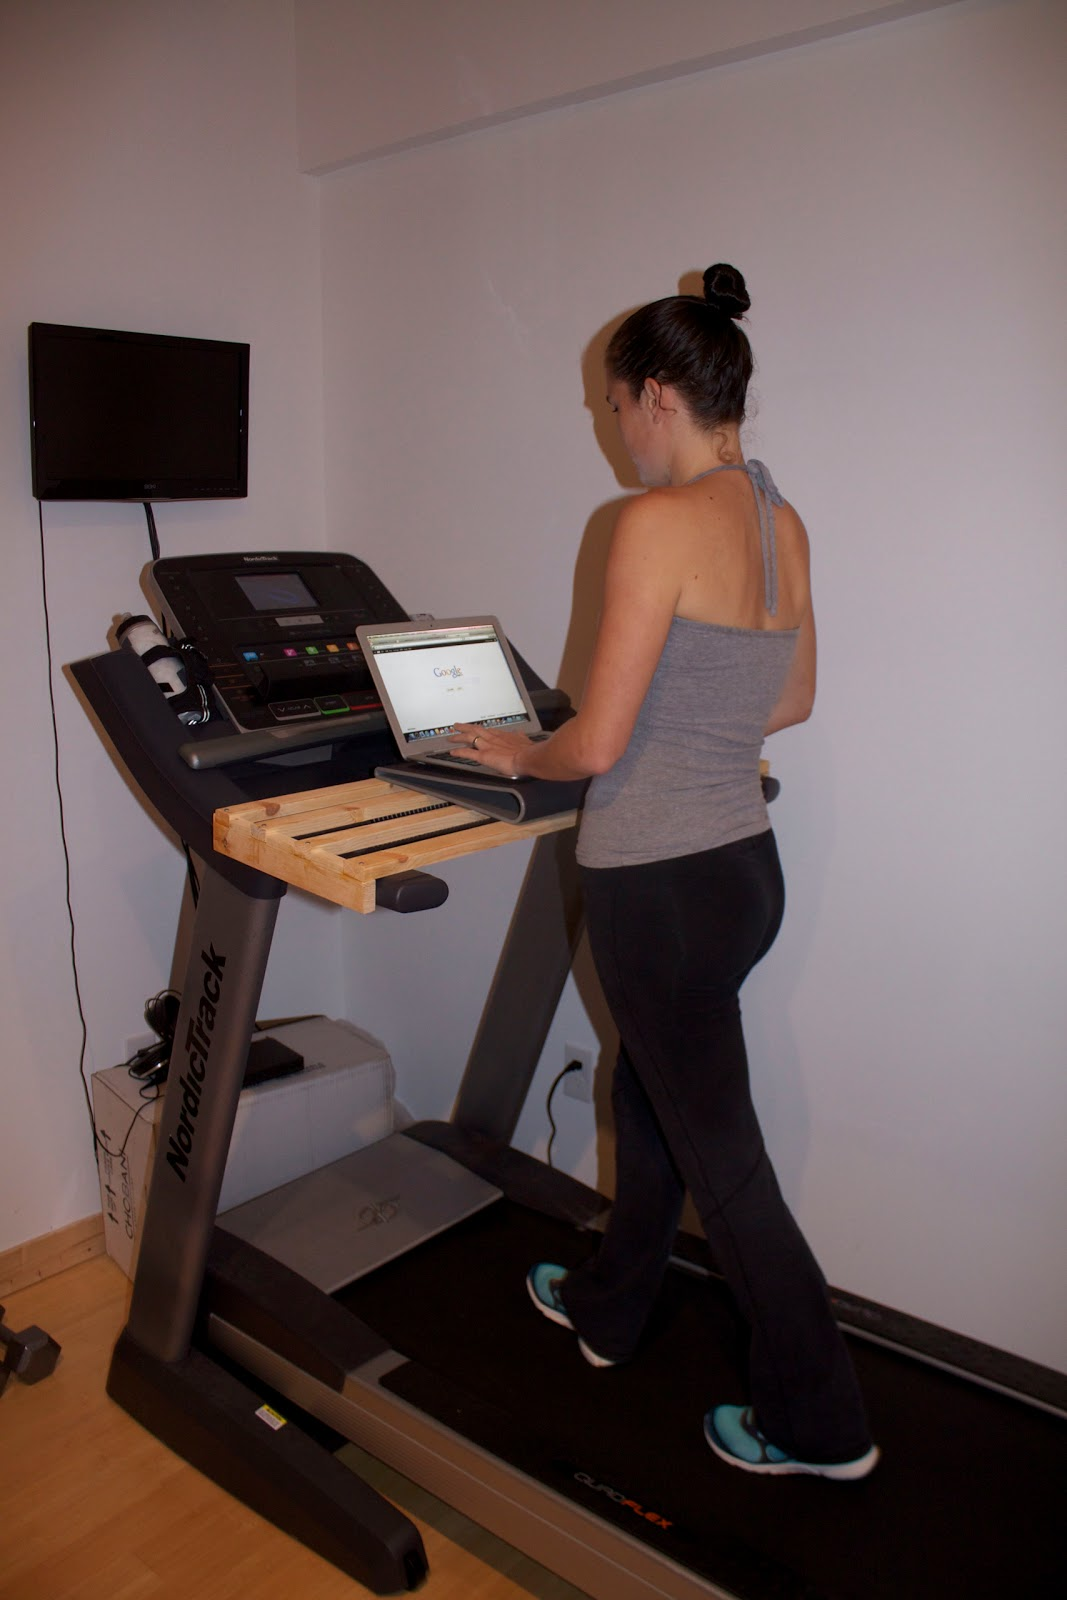 Diy Treadmill Desk. Acrylic Jewelry Organizer Drawers. Desk Pen Tray. Black Nesting Tables. Office Depot Desks And Chairs. Classroom Desk Setup. Nested Tables. Hammered Drawer Pulls. Monarch Specialties Corner Desk